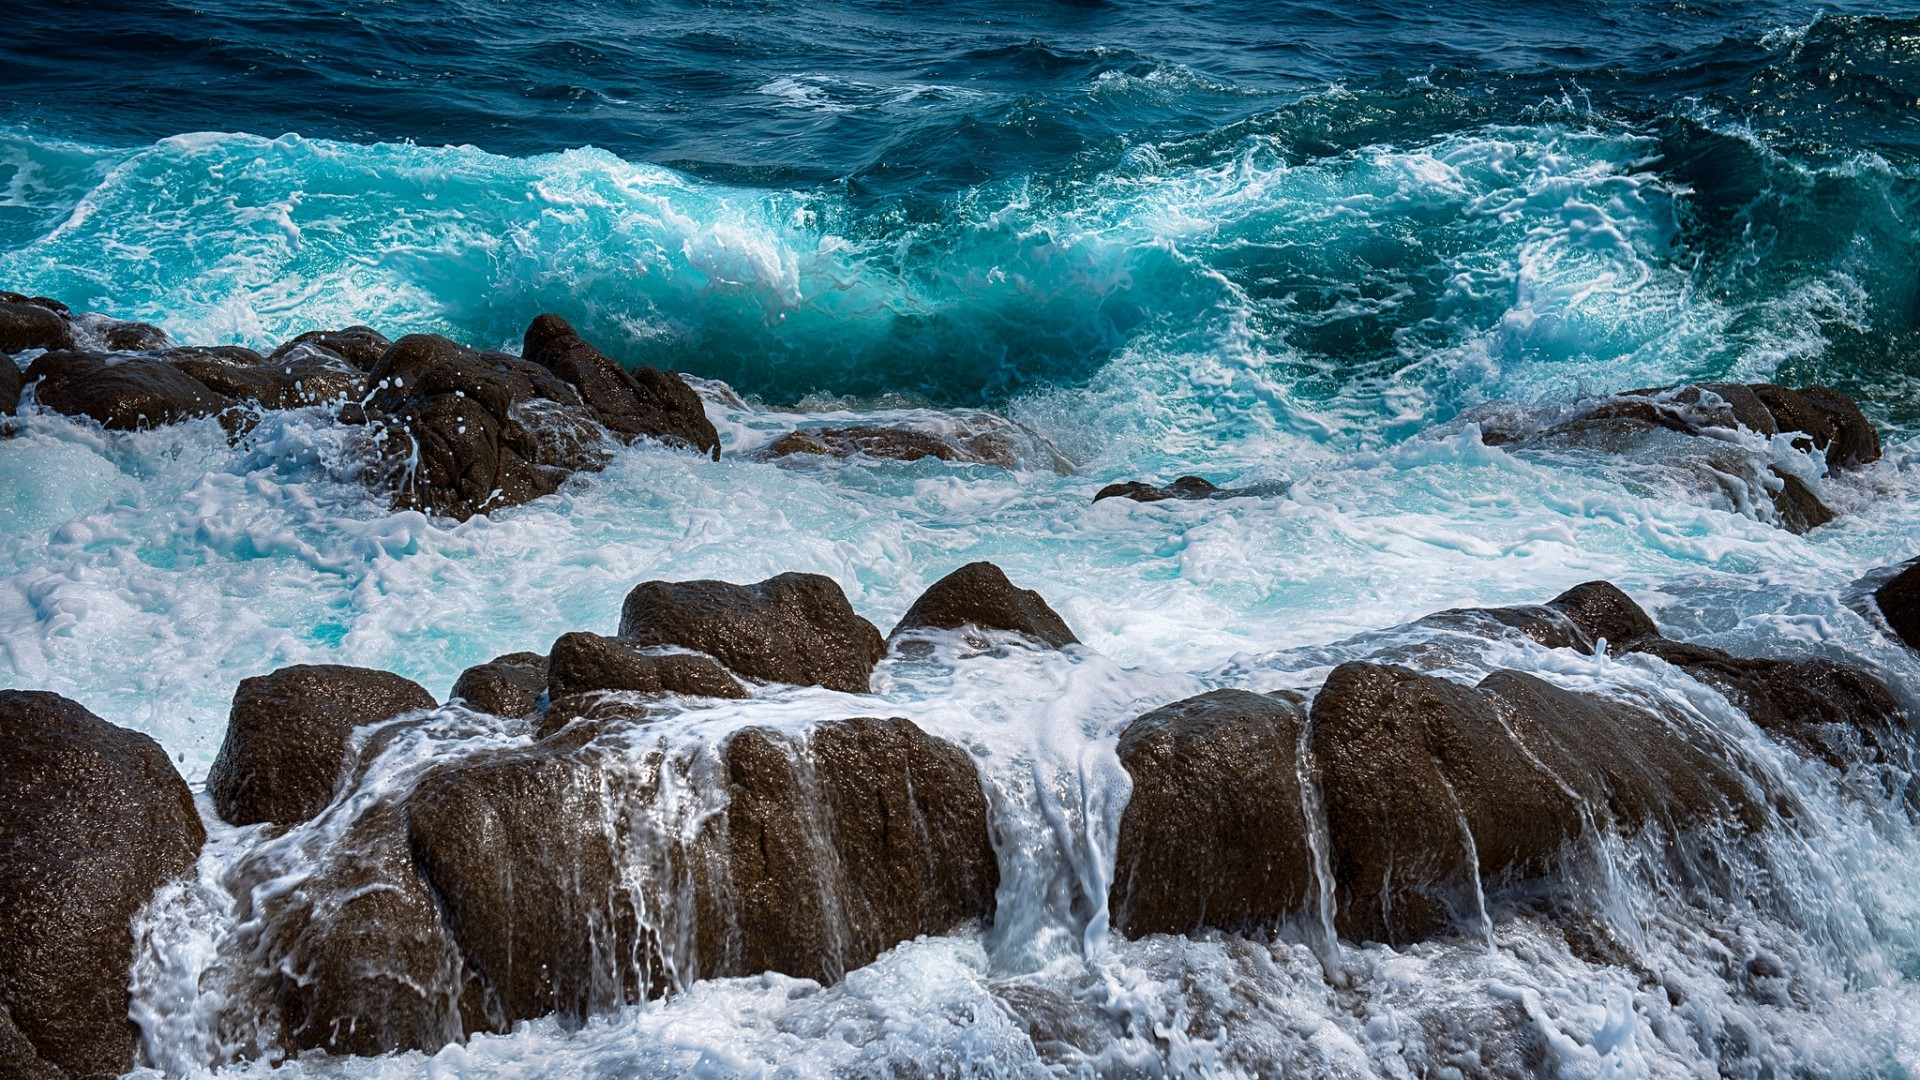 1920x1080 Download Wallpaper  Sea, Rocks, Spray, Surf, Foam Full HD 1080p HD